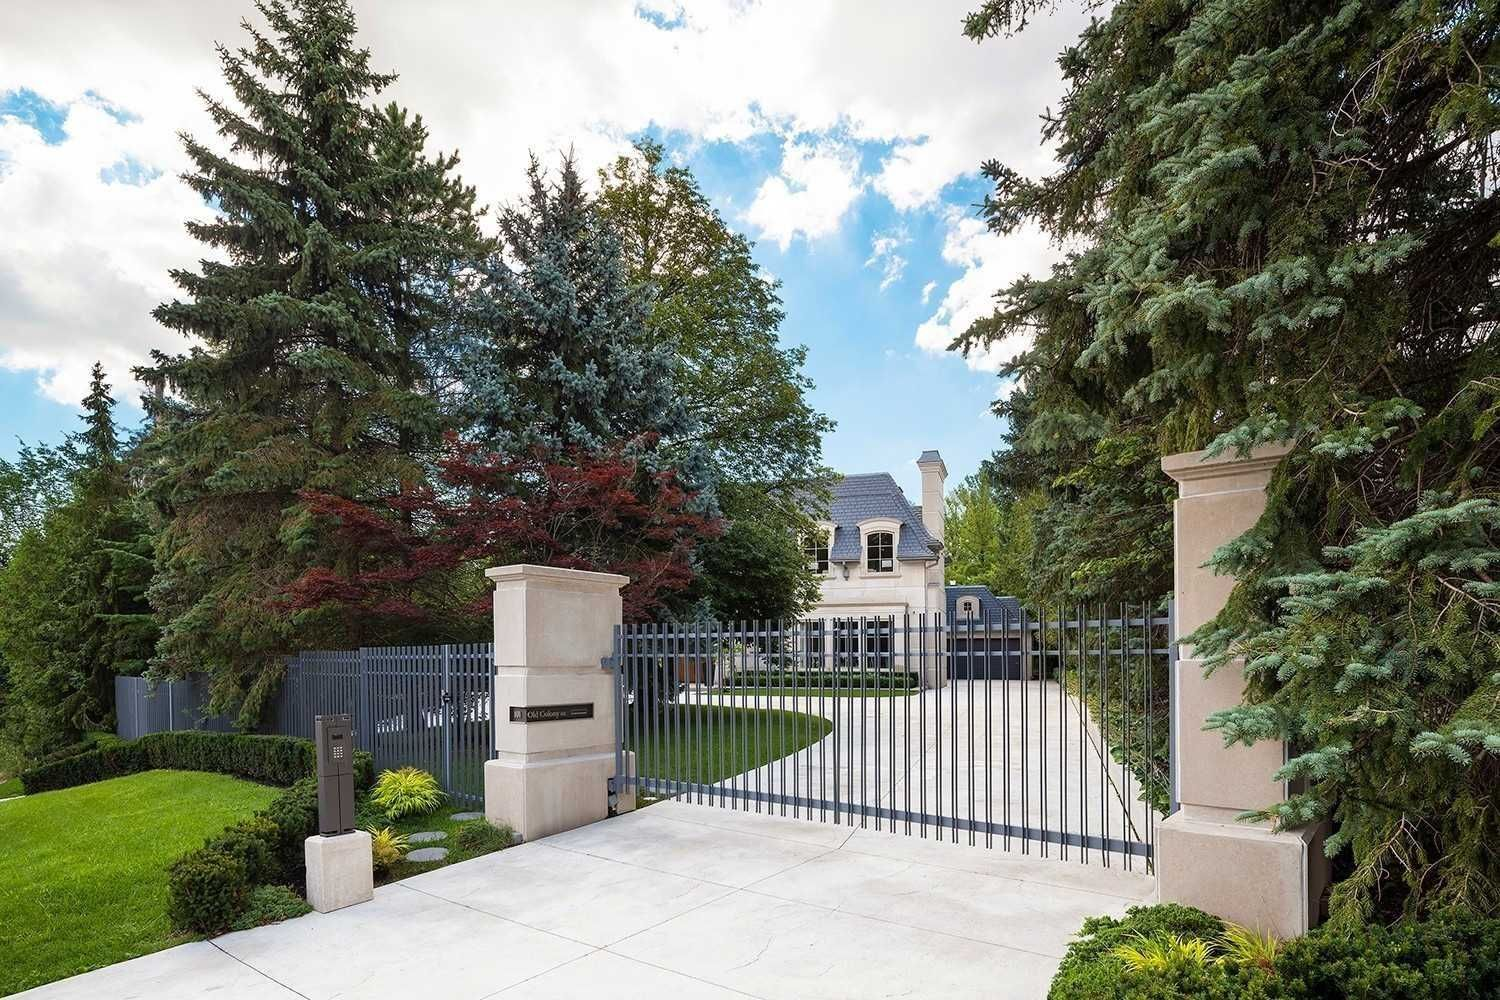 Main Photo: 101 Old Colony Road in Toronto: St. Andrew-Windfields House (2-Storey) for sale (Toronto C12)  : MLS®# C5165230